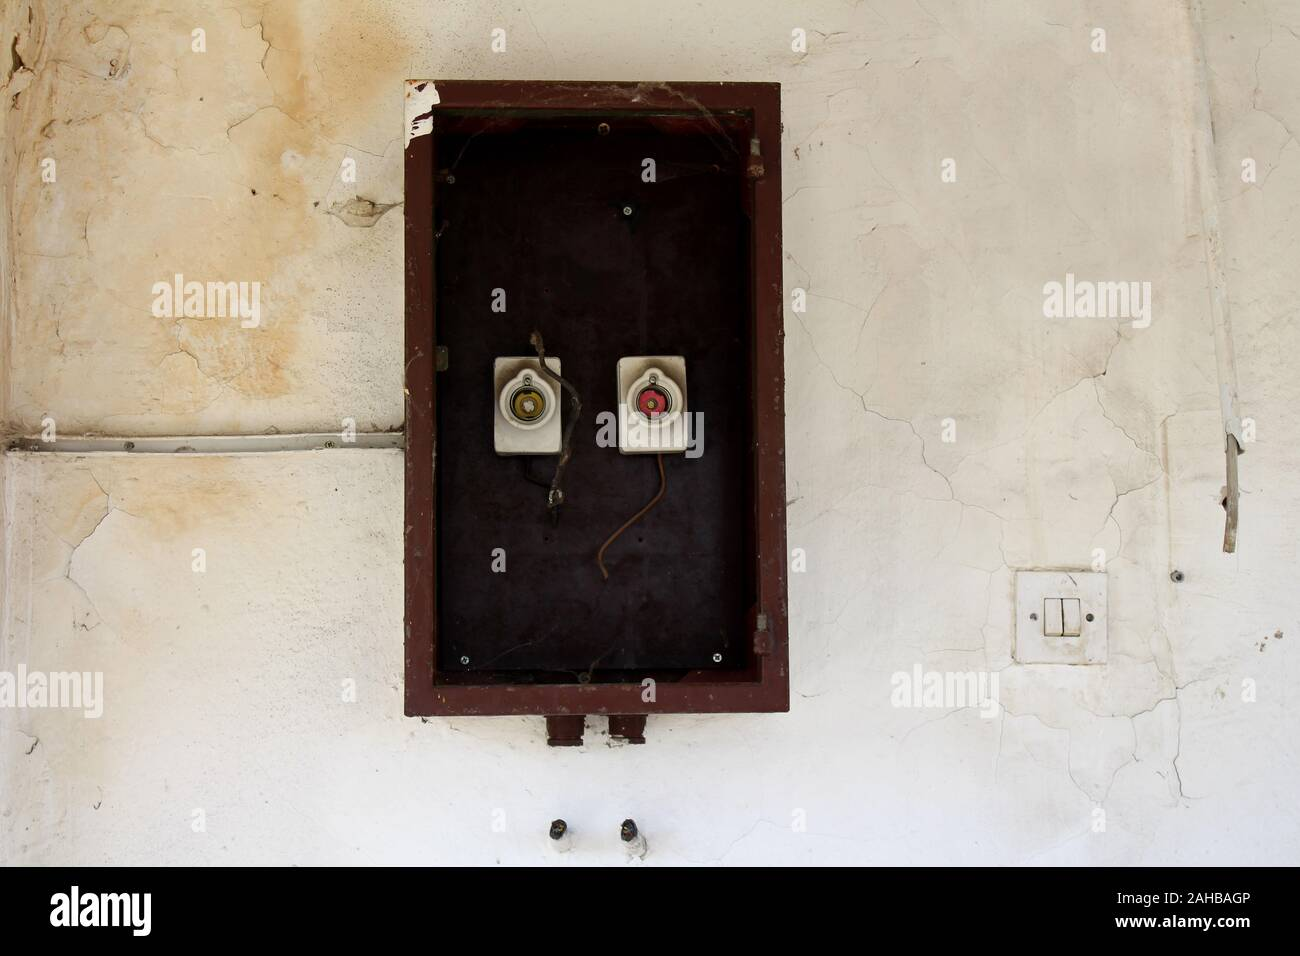 [DIAGRAM_1CA]  Old Fuses Fuse Box High Resolution Stock Photography and Images - Alamy | Outside Fuse Box Fuses Missing |  | Alamy